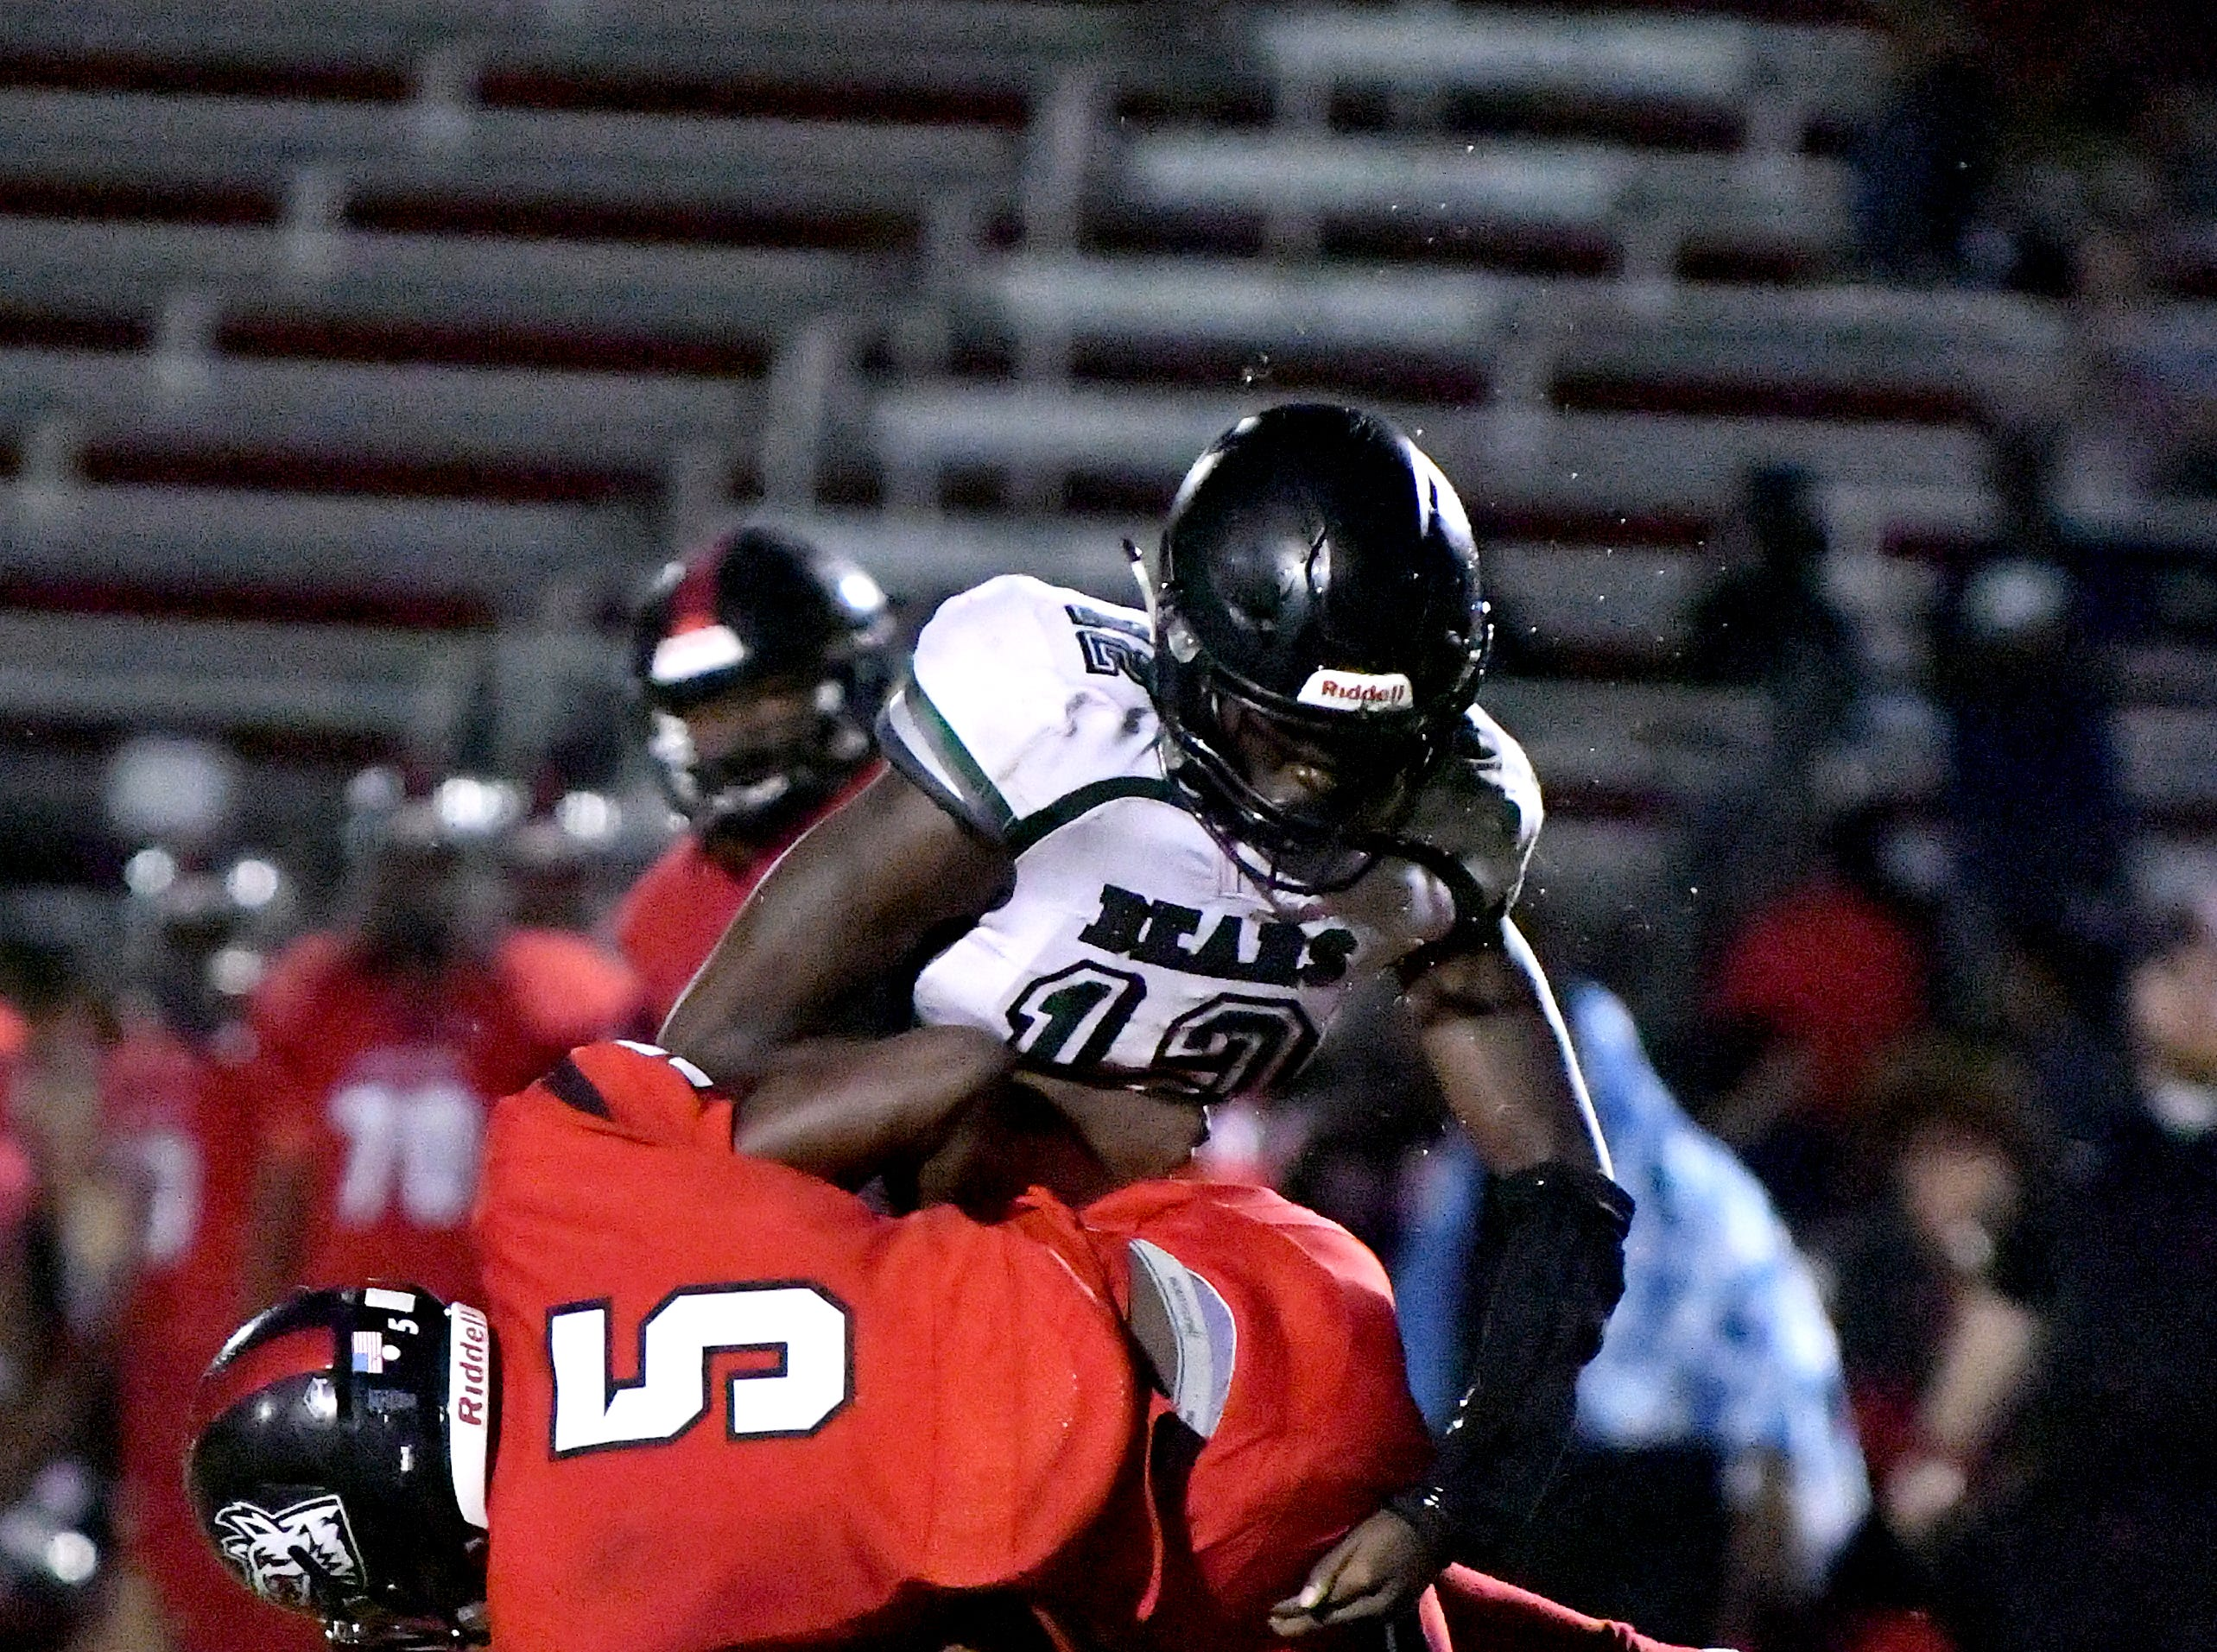 South Fort Myers High School Quincy Milhomme (5) is stopped by two Palmetto Ridge High School defenders during game in Fort Myers ,Friday, Sept. 21, 2018.